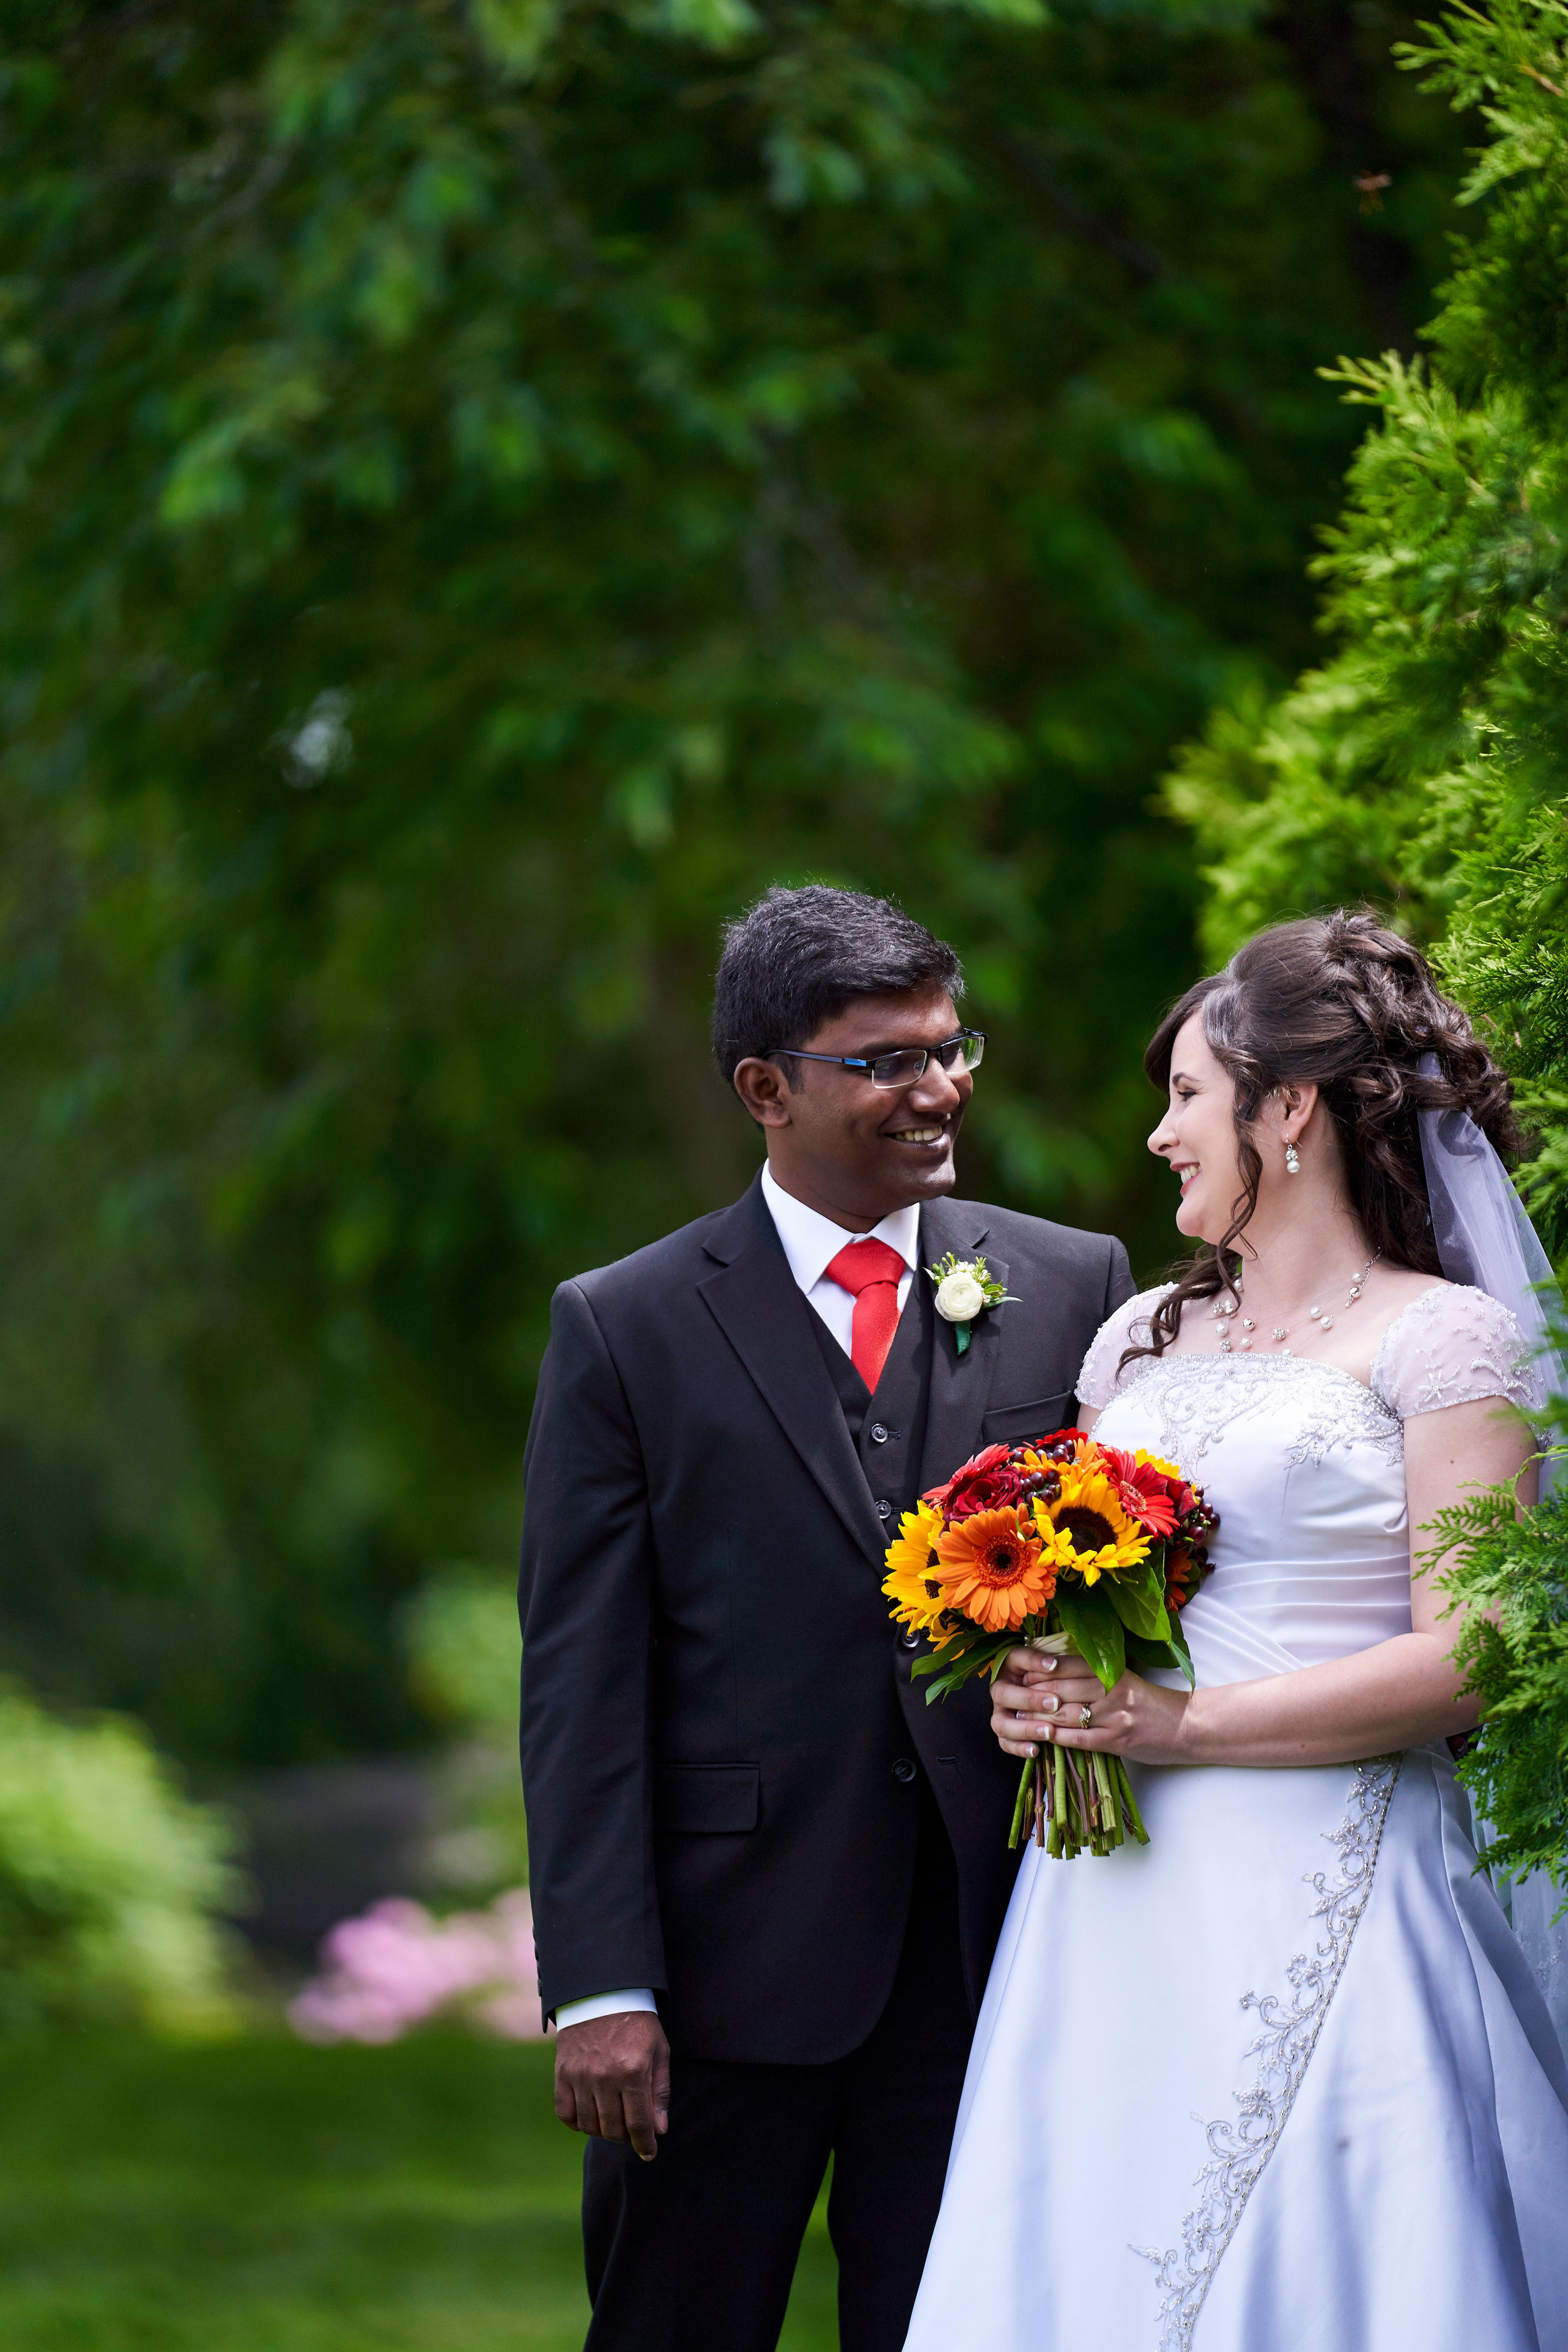 Angela & Krishna's Wedding - 326.jpg